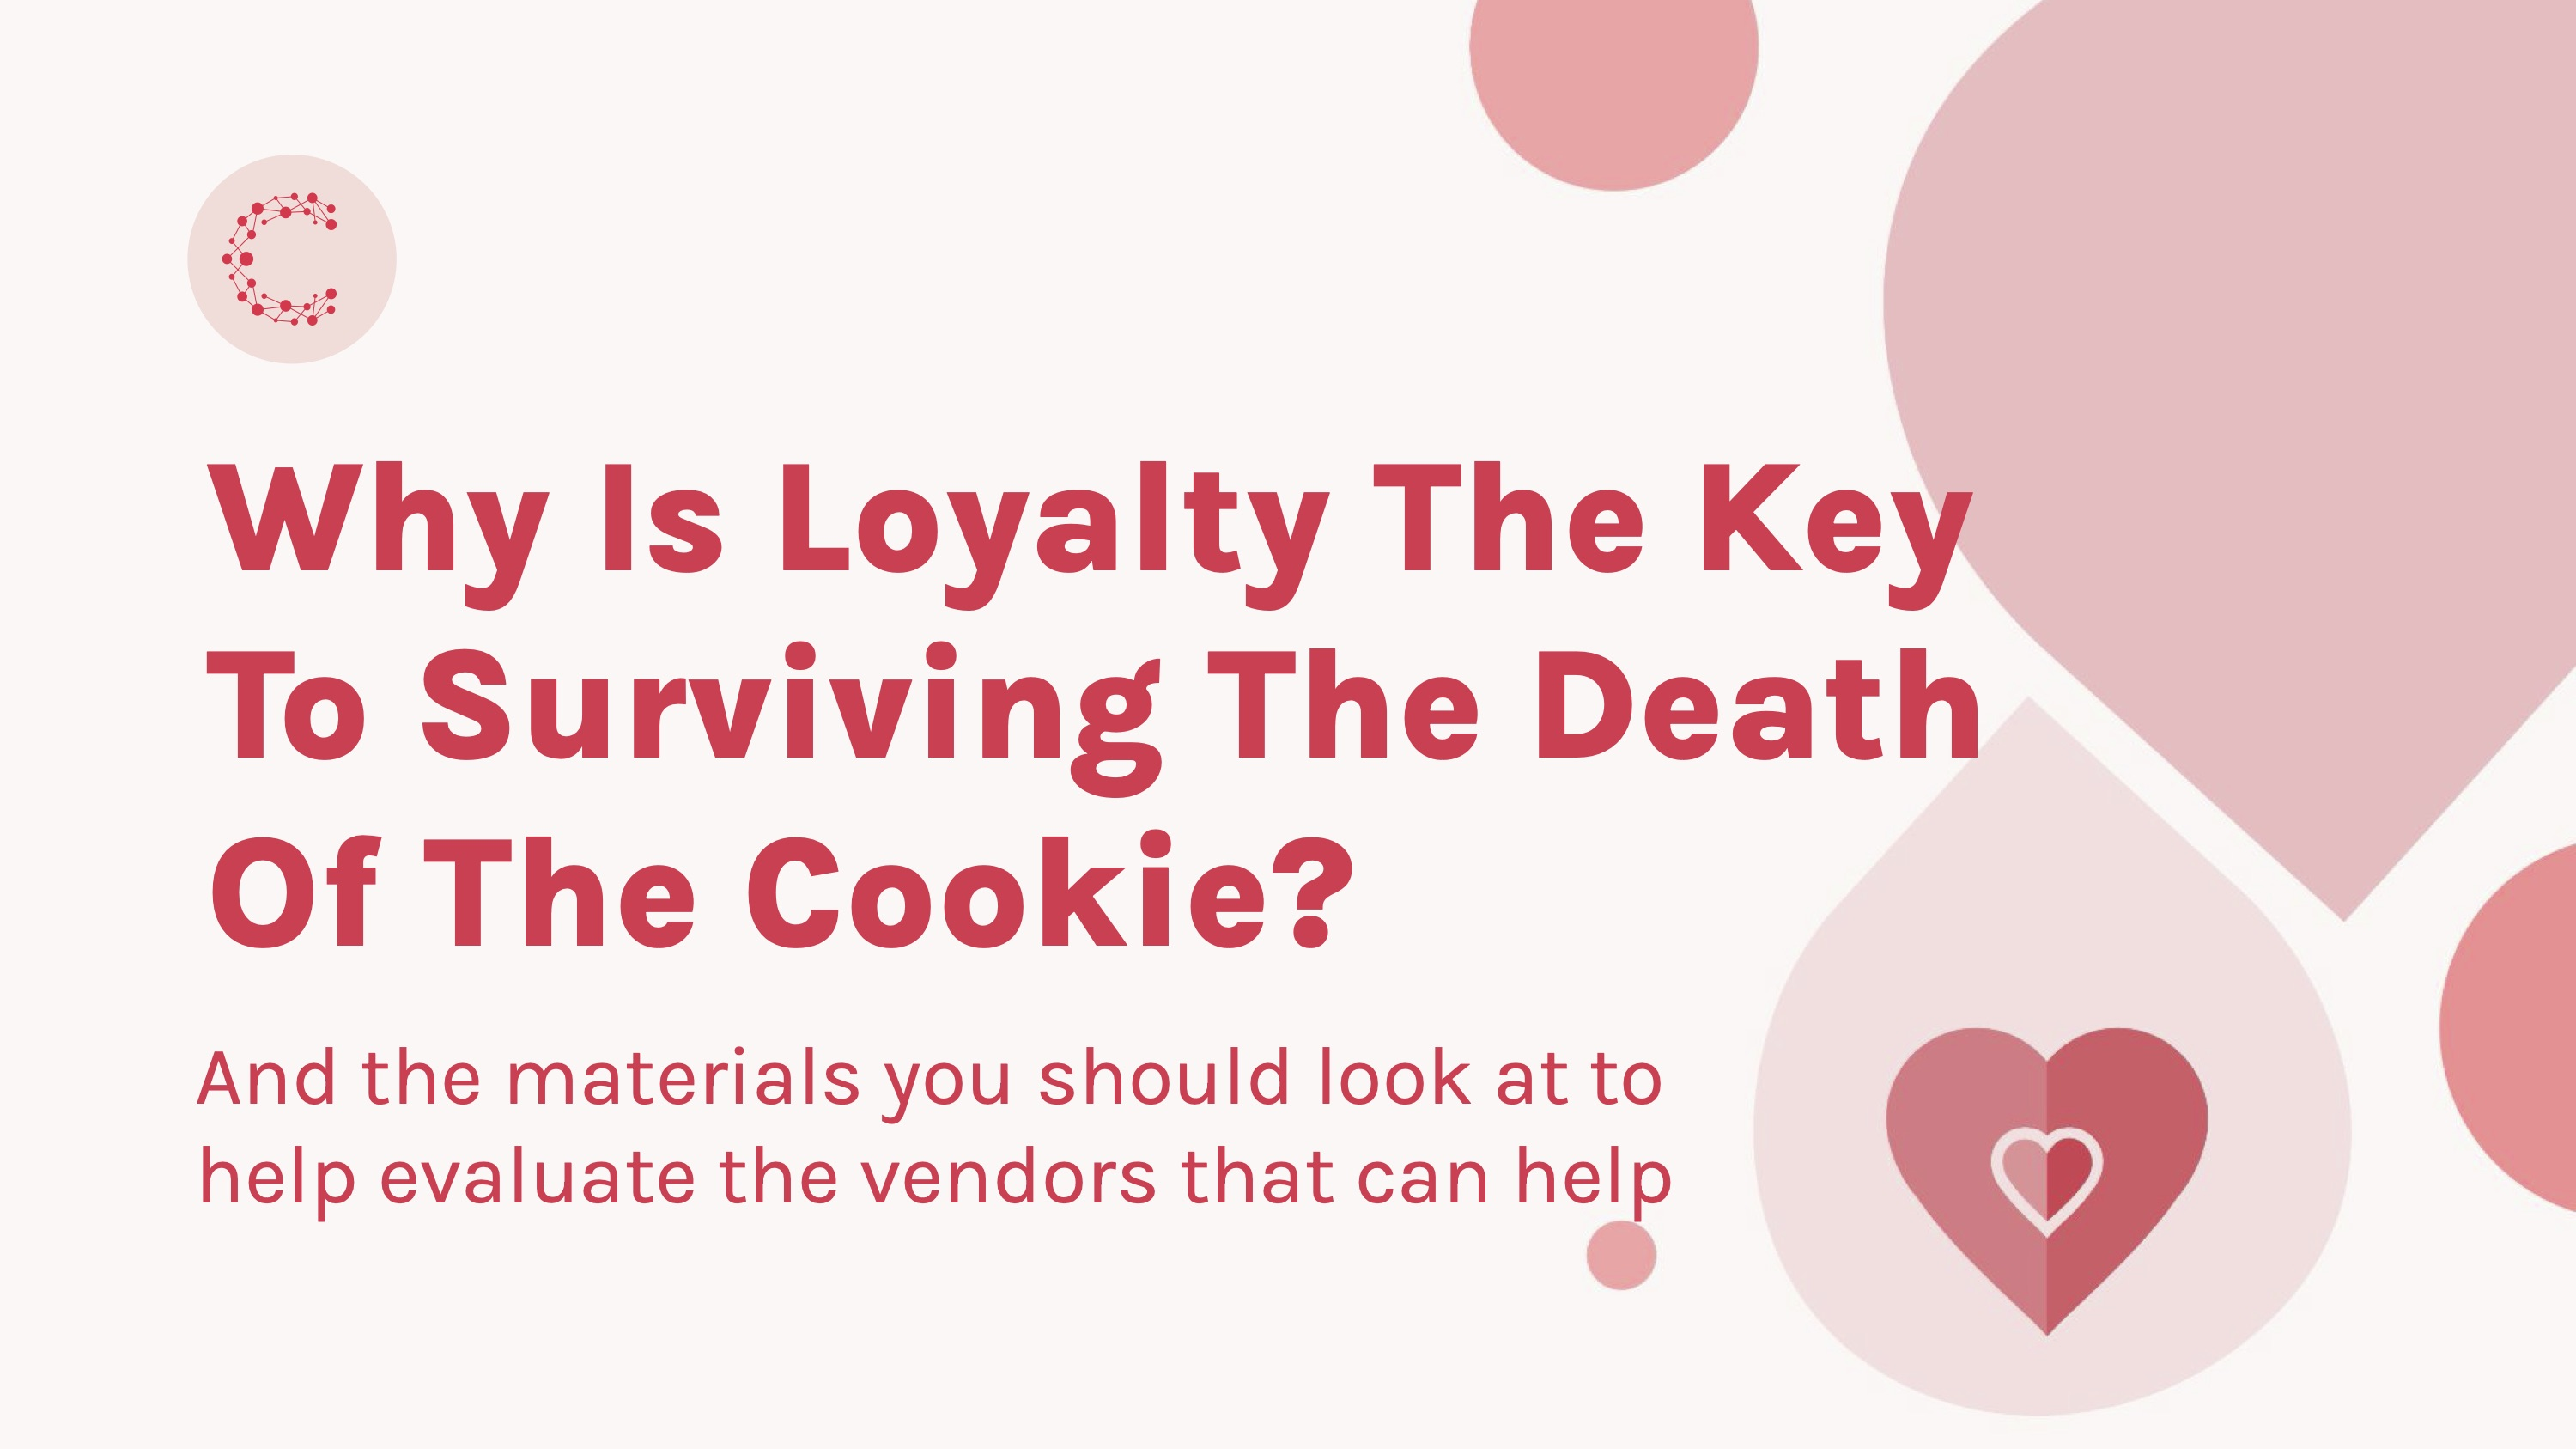 Why is Loyalty the Key to Surviving the Death of the Cookie?